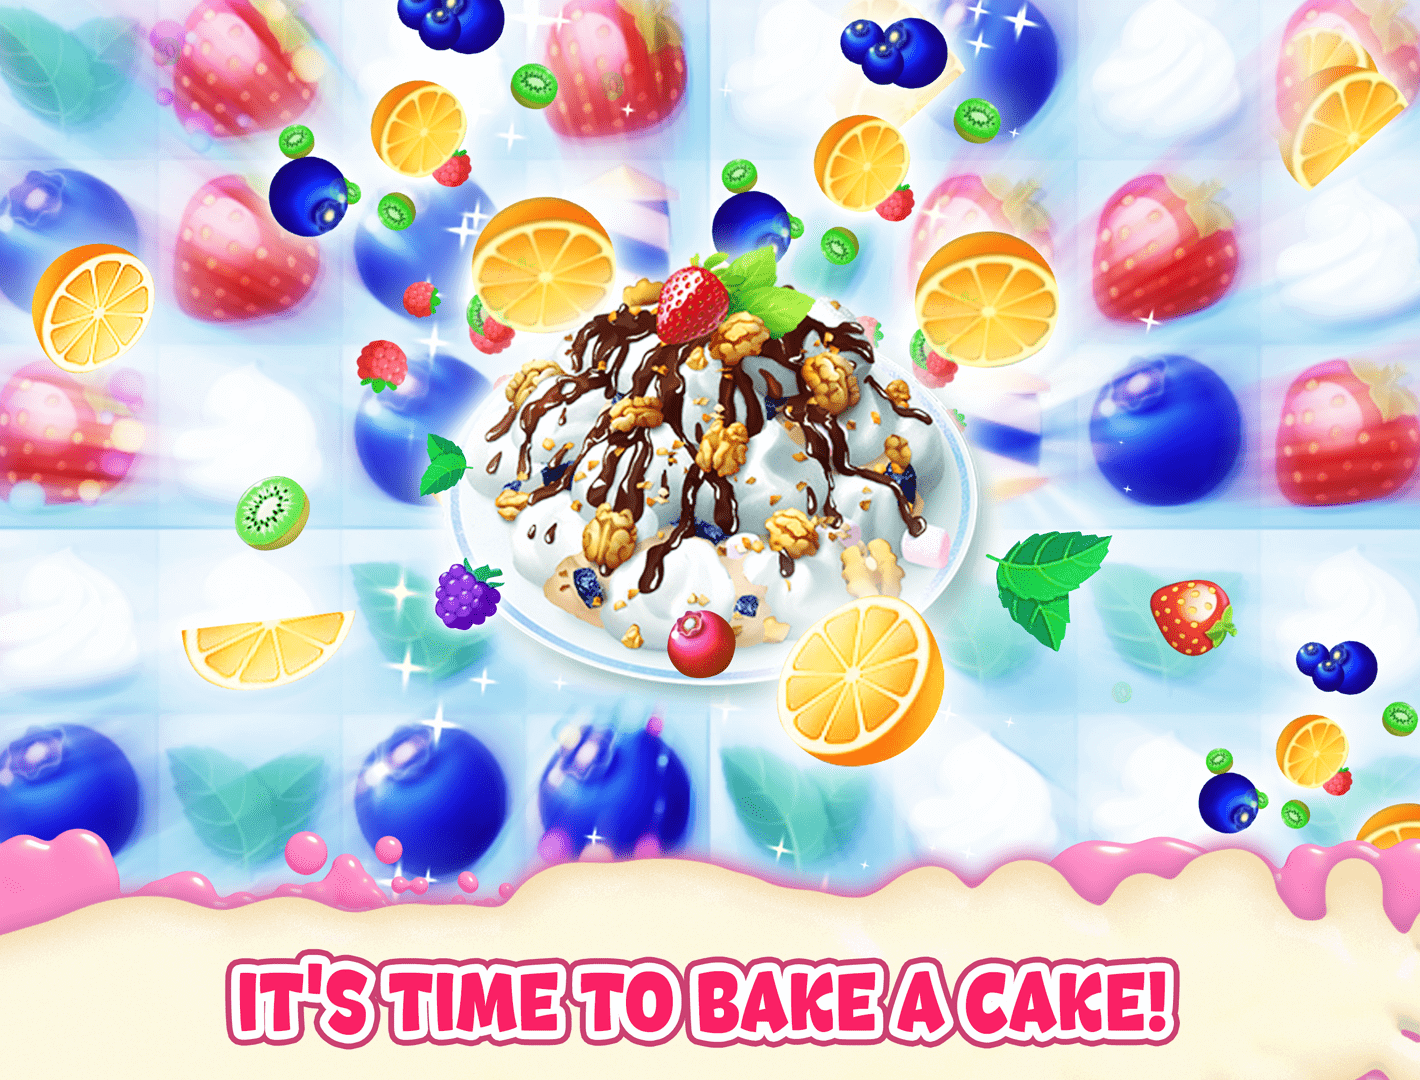 Gallery-img-BakeACake-5-1420-1080-px.png